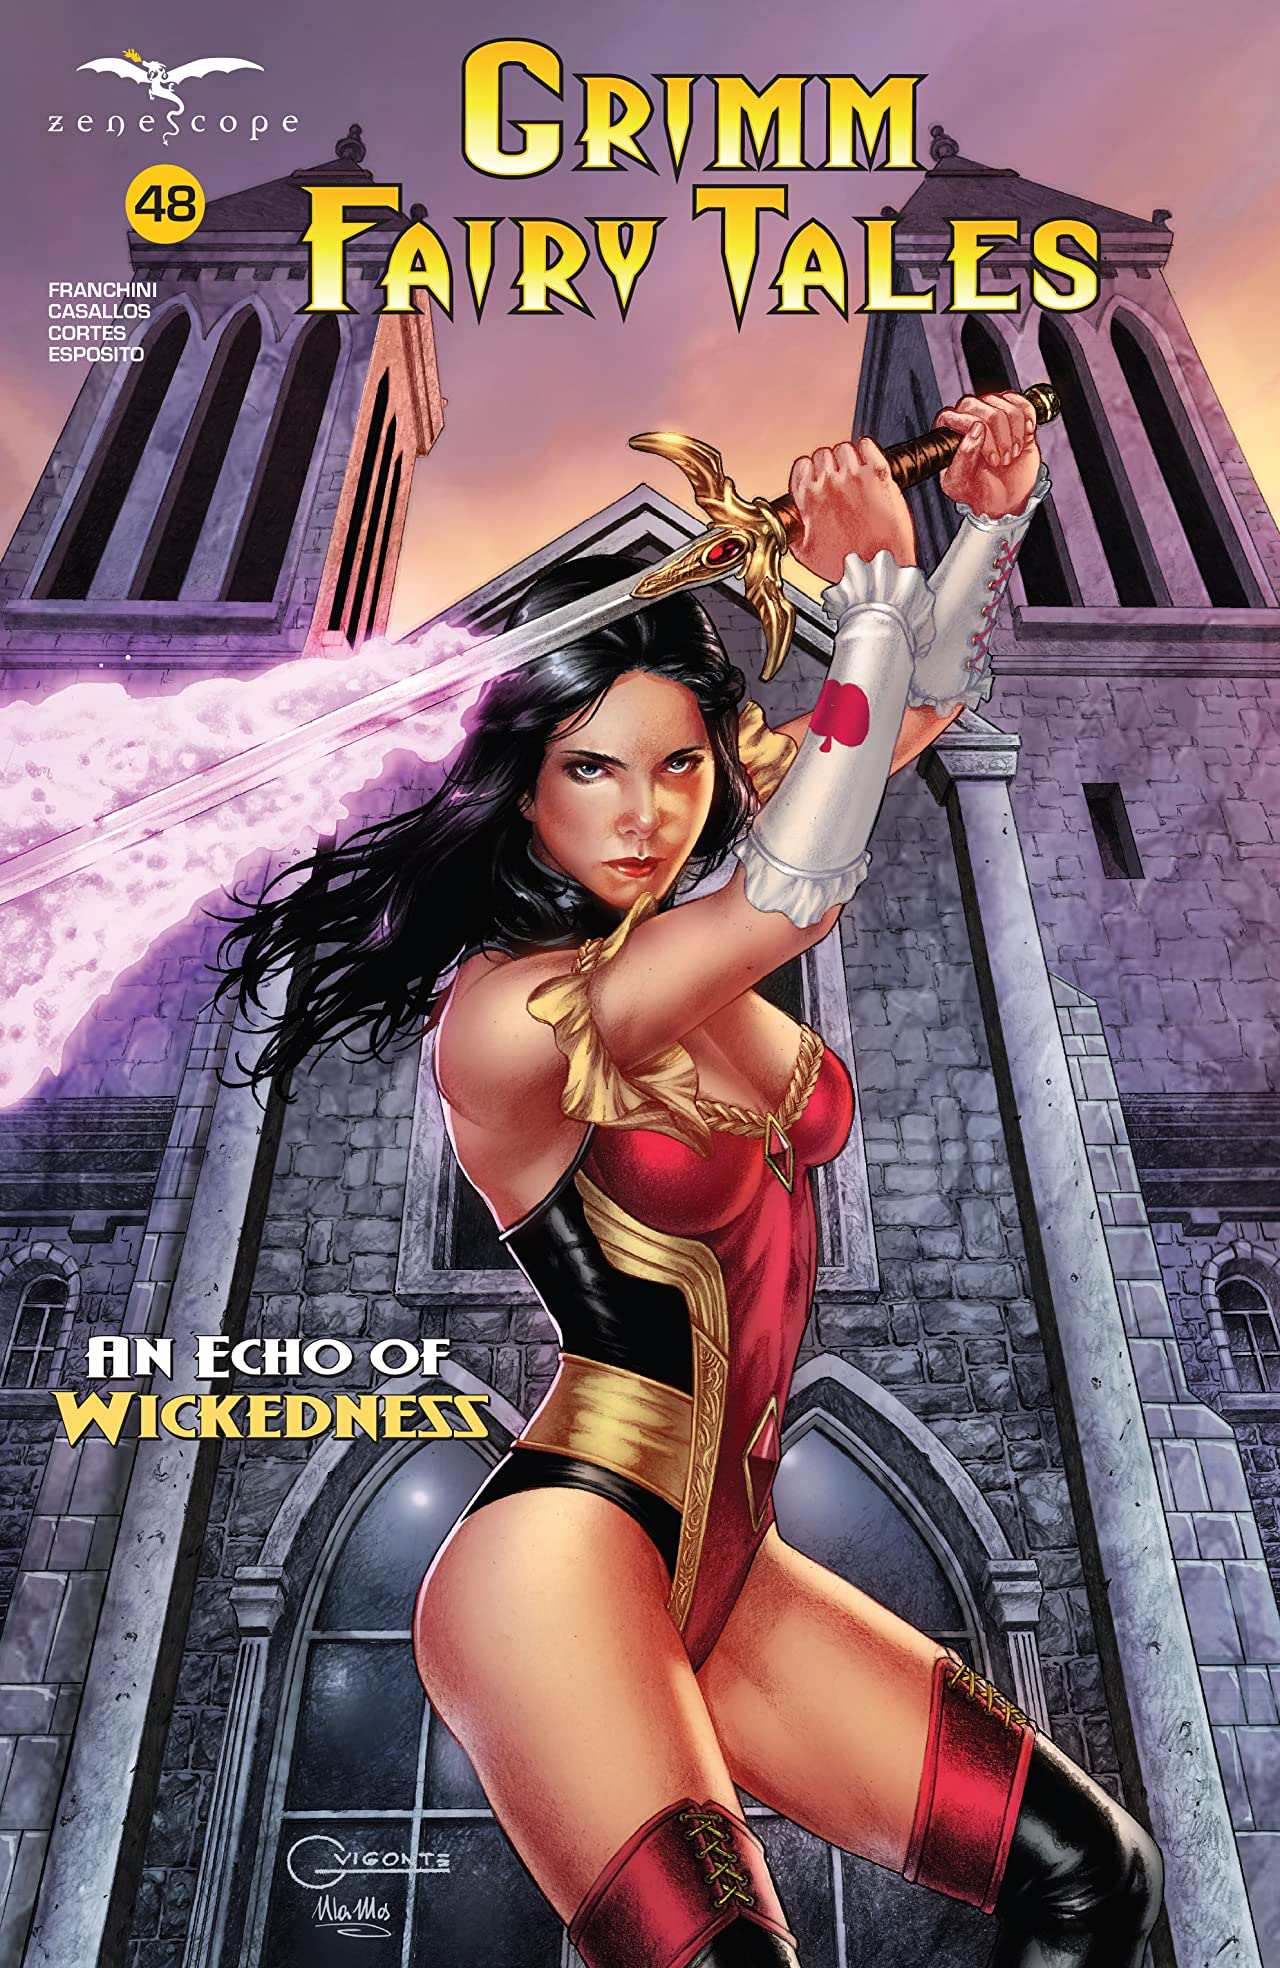 Grimm Fairy Tales #48